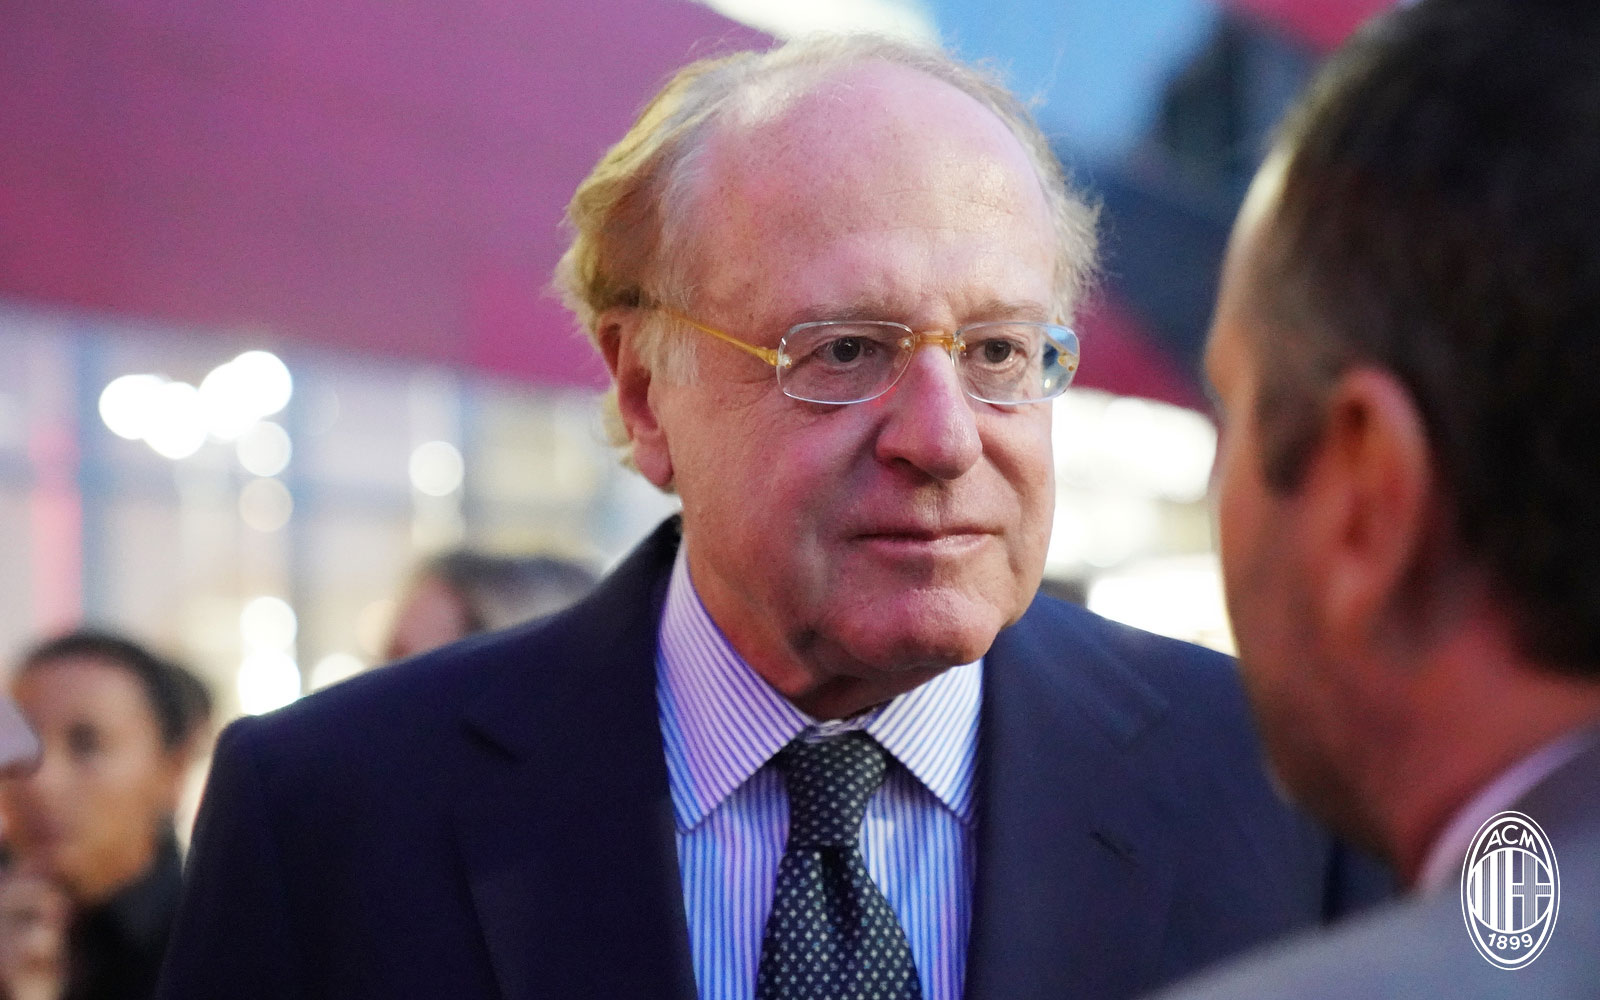 Paolo Scaroni on the night of the grand opening of the restaurant of Casa Milan Bistrot/Fourghetti on September 12, 2018. (@acmilan.com)